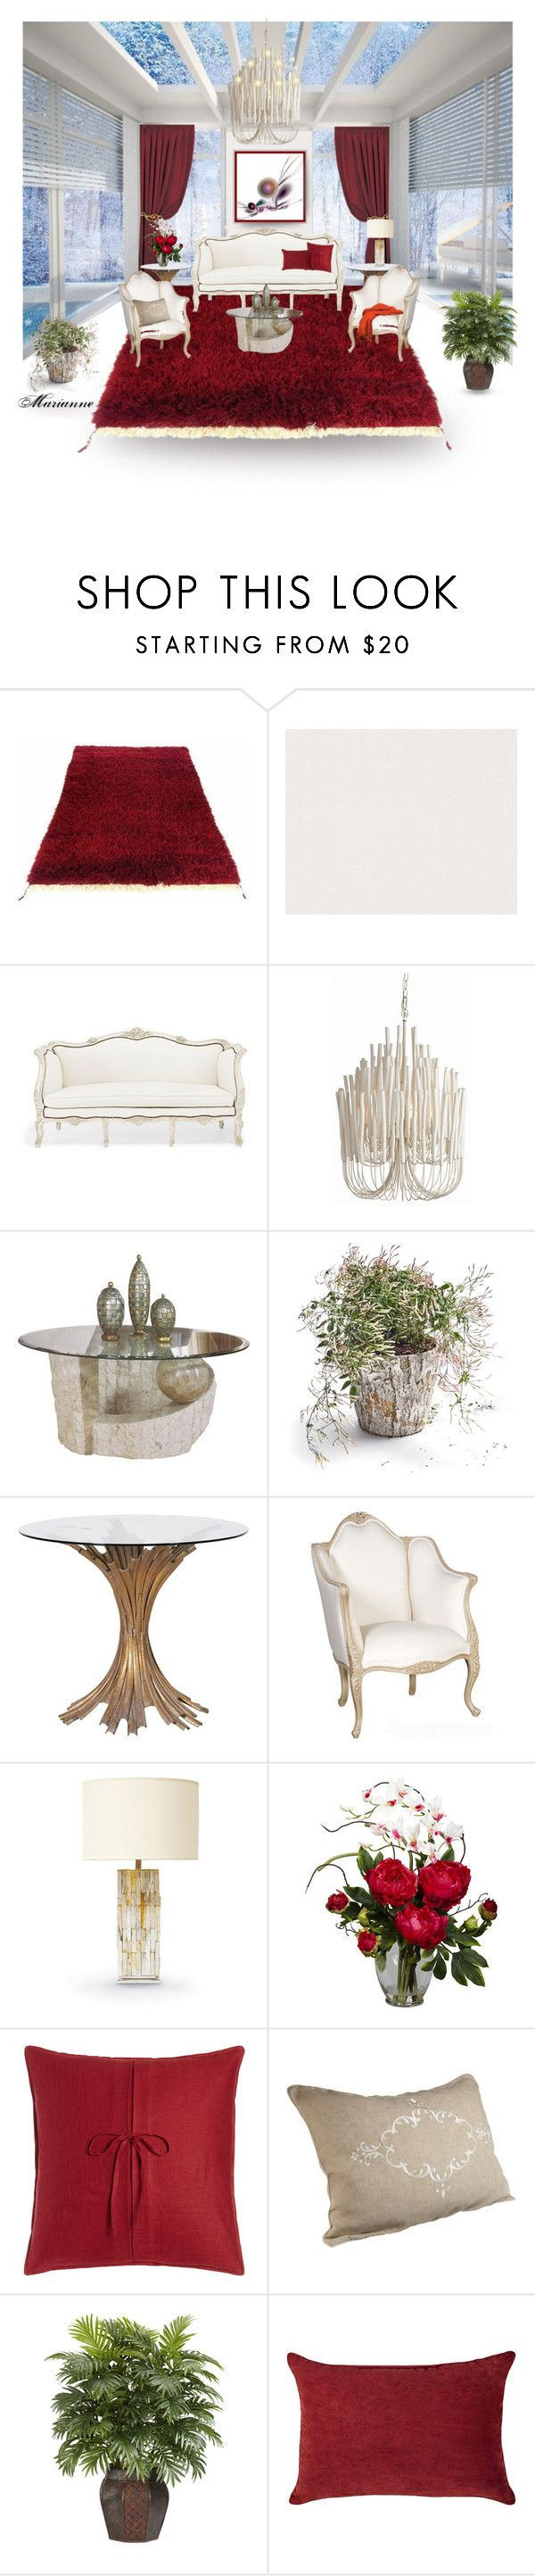 """Home 3"" by marianne-spiessens on Polyvore featuring interior, interiors, interior design, home, home decor, interior decorating, Tulu, Market, Palecek and Nearly Natural"